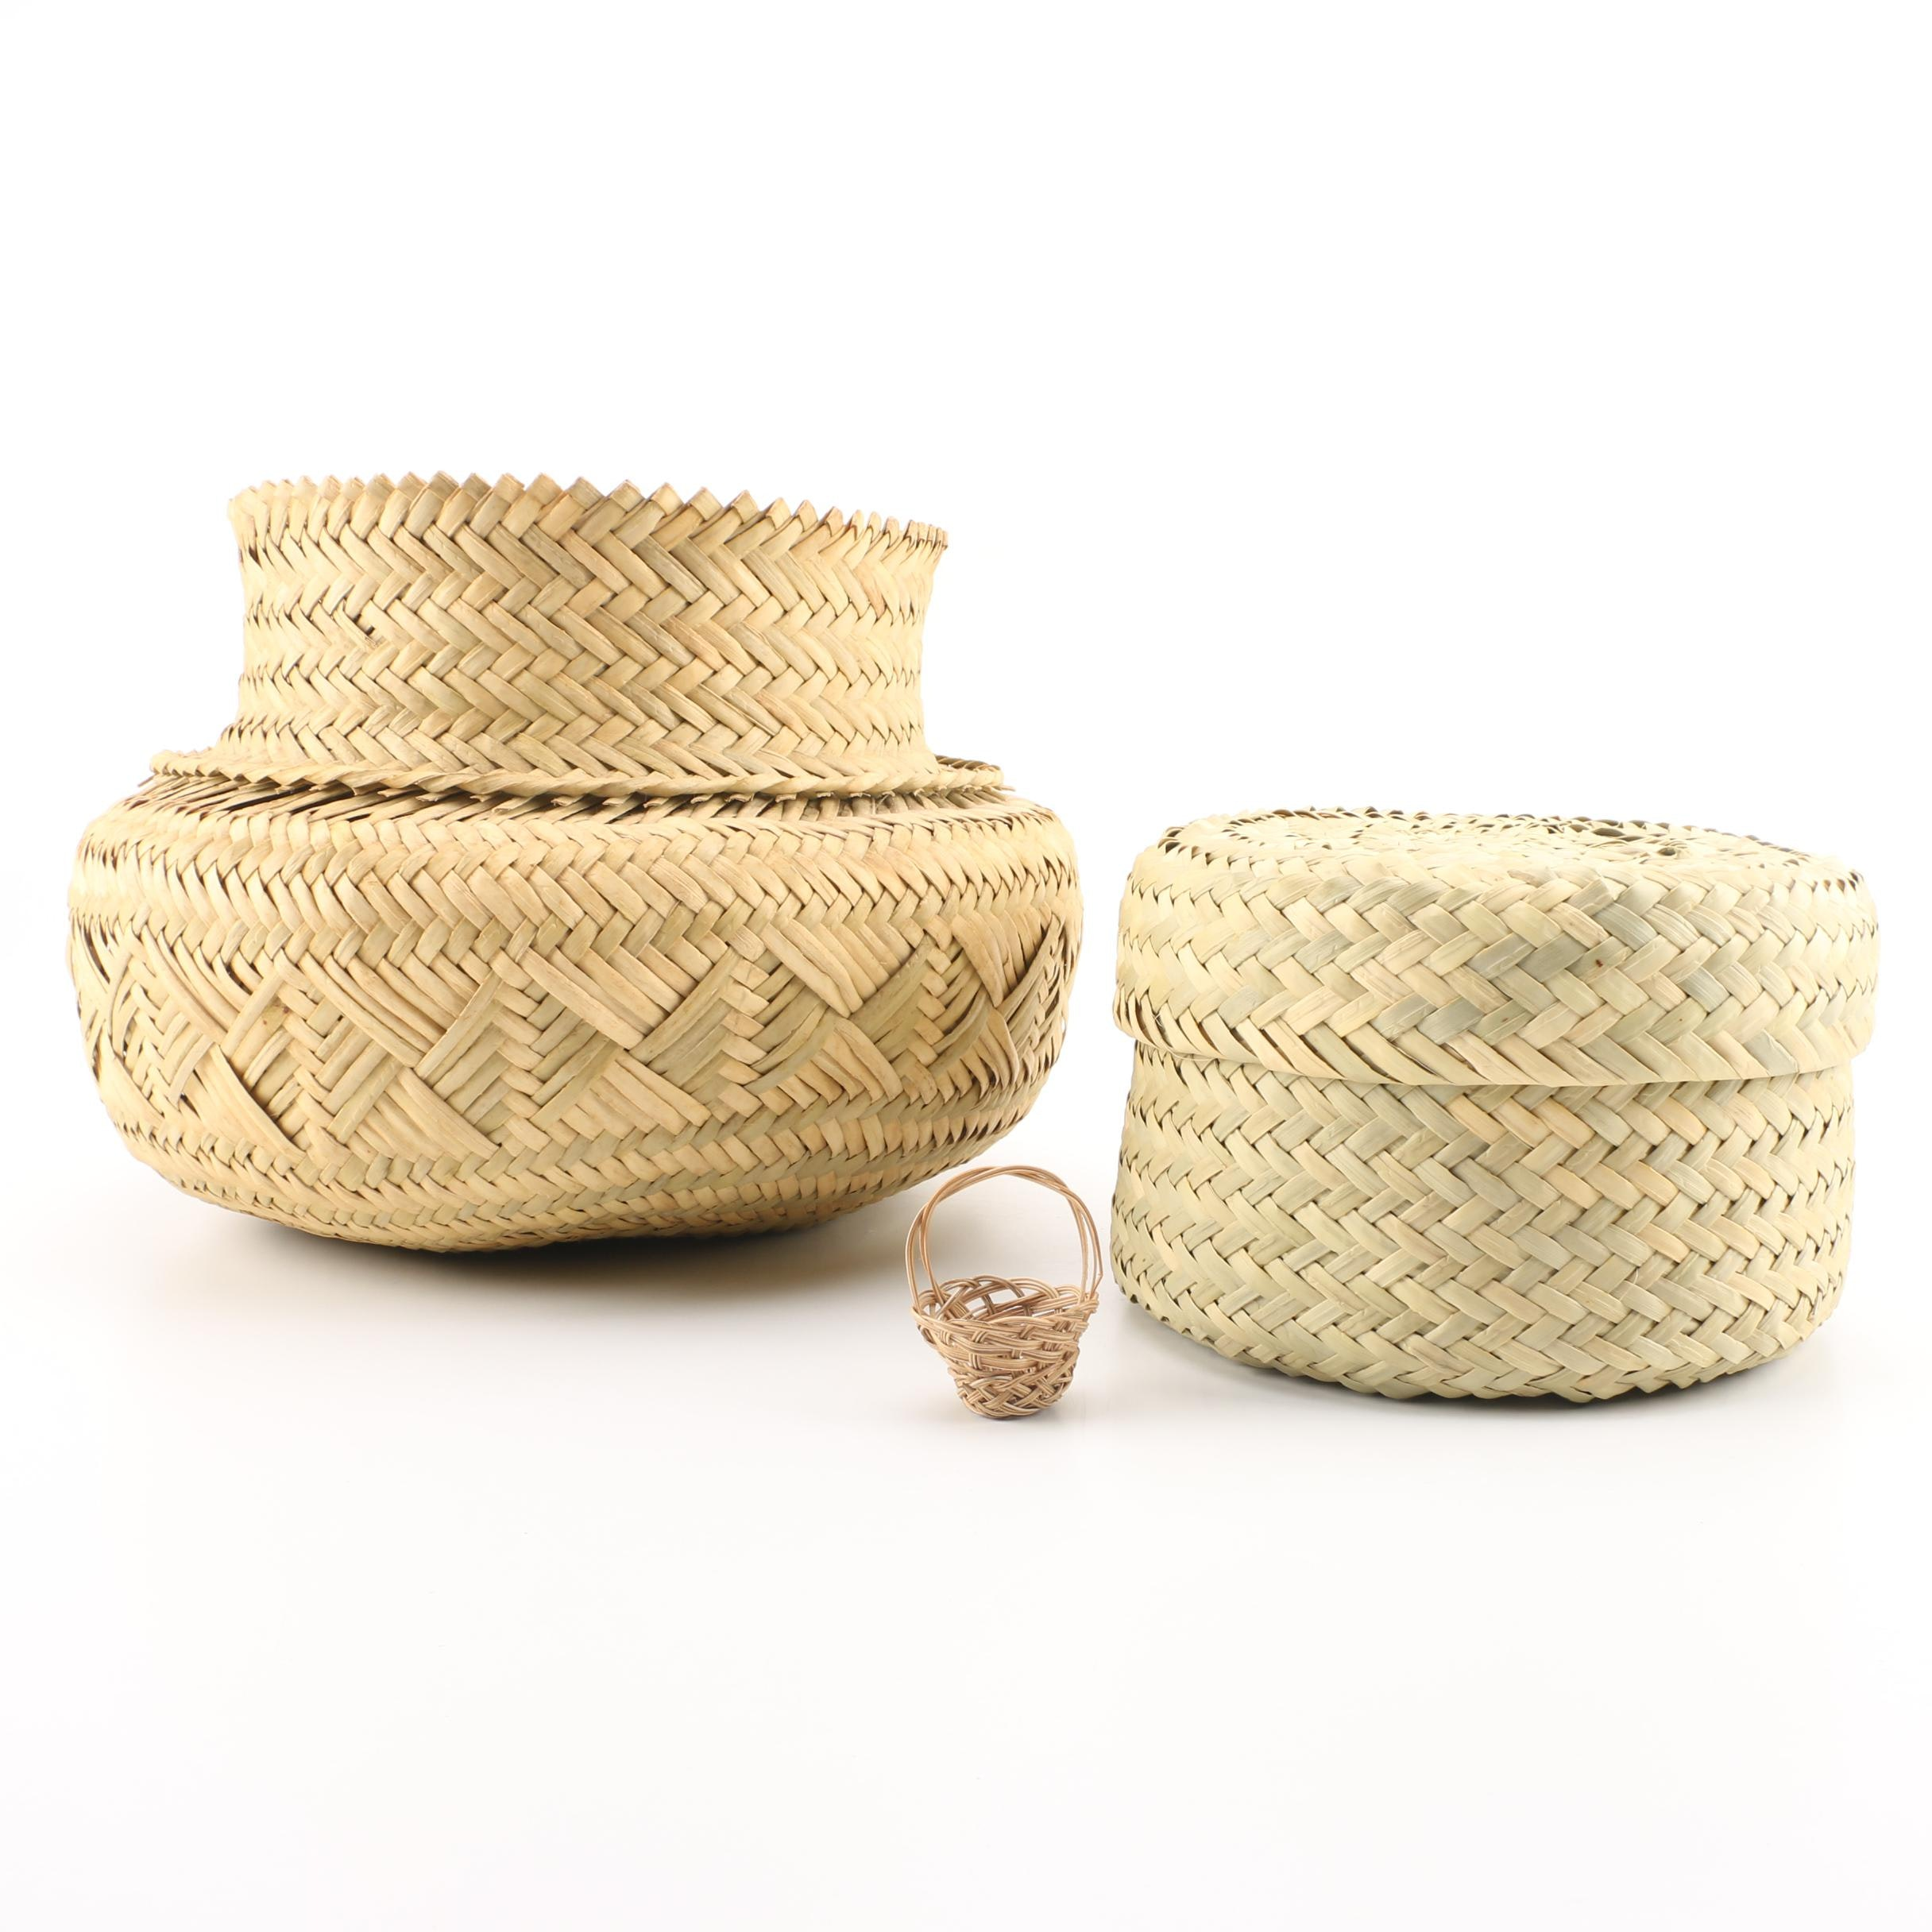 Decorative Woven Baskets Including Lidded Woven Basket